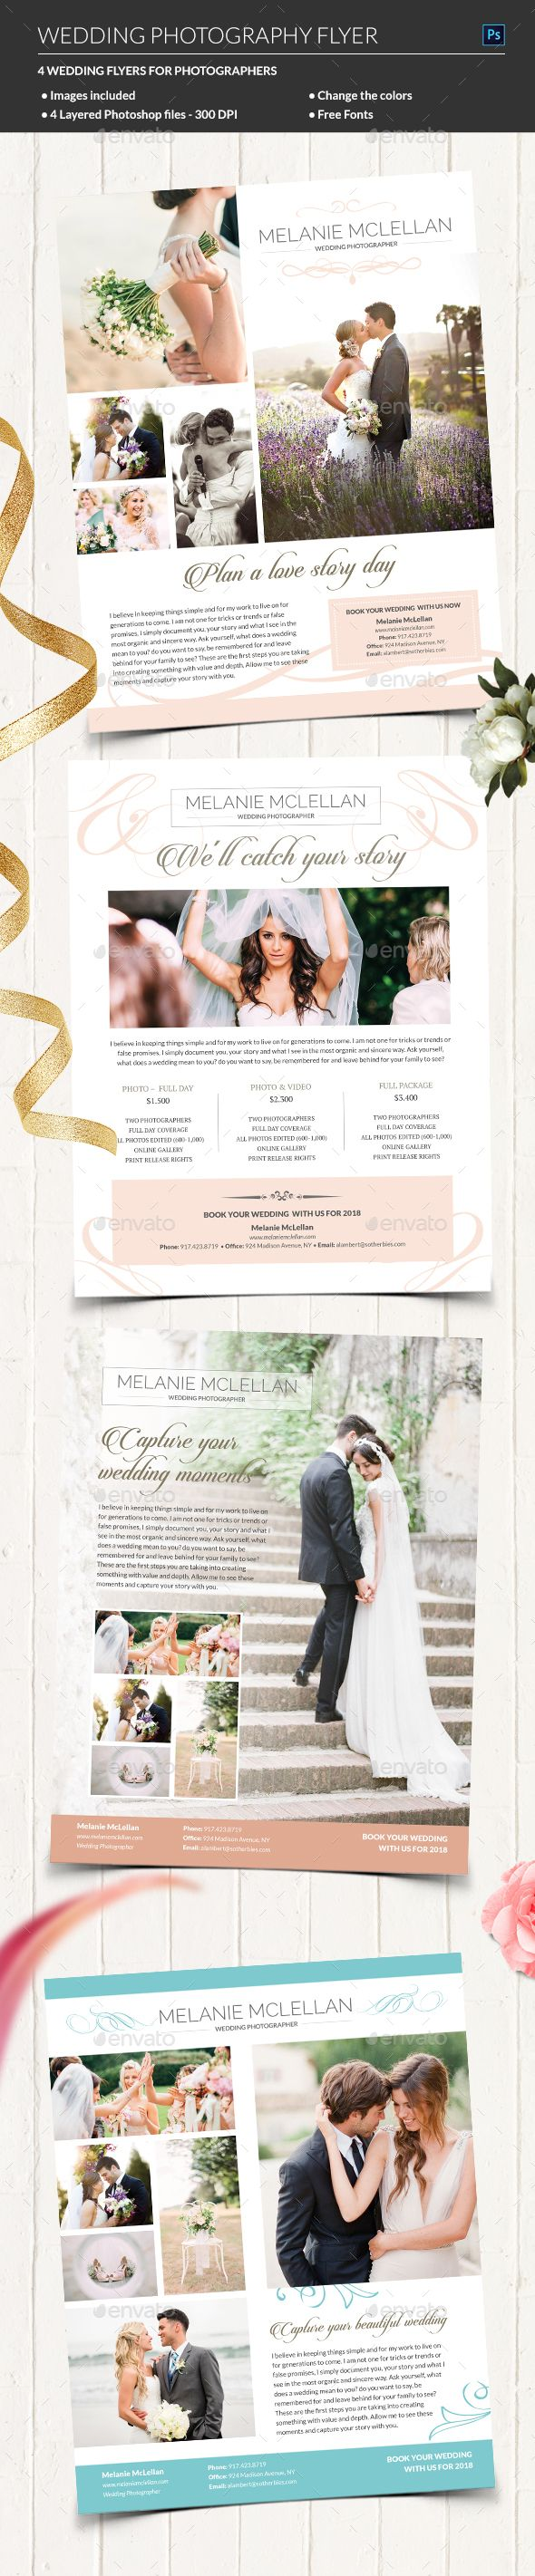 Wedding Photography Flyer — Photoshop PSD #simple #just married • Available here → https://graphicriver.net/item/wedding-photography-flyer/19619779?ref=pxcr